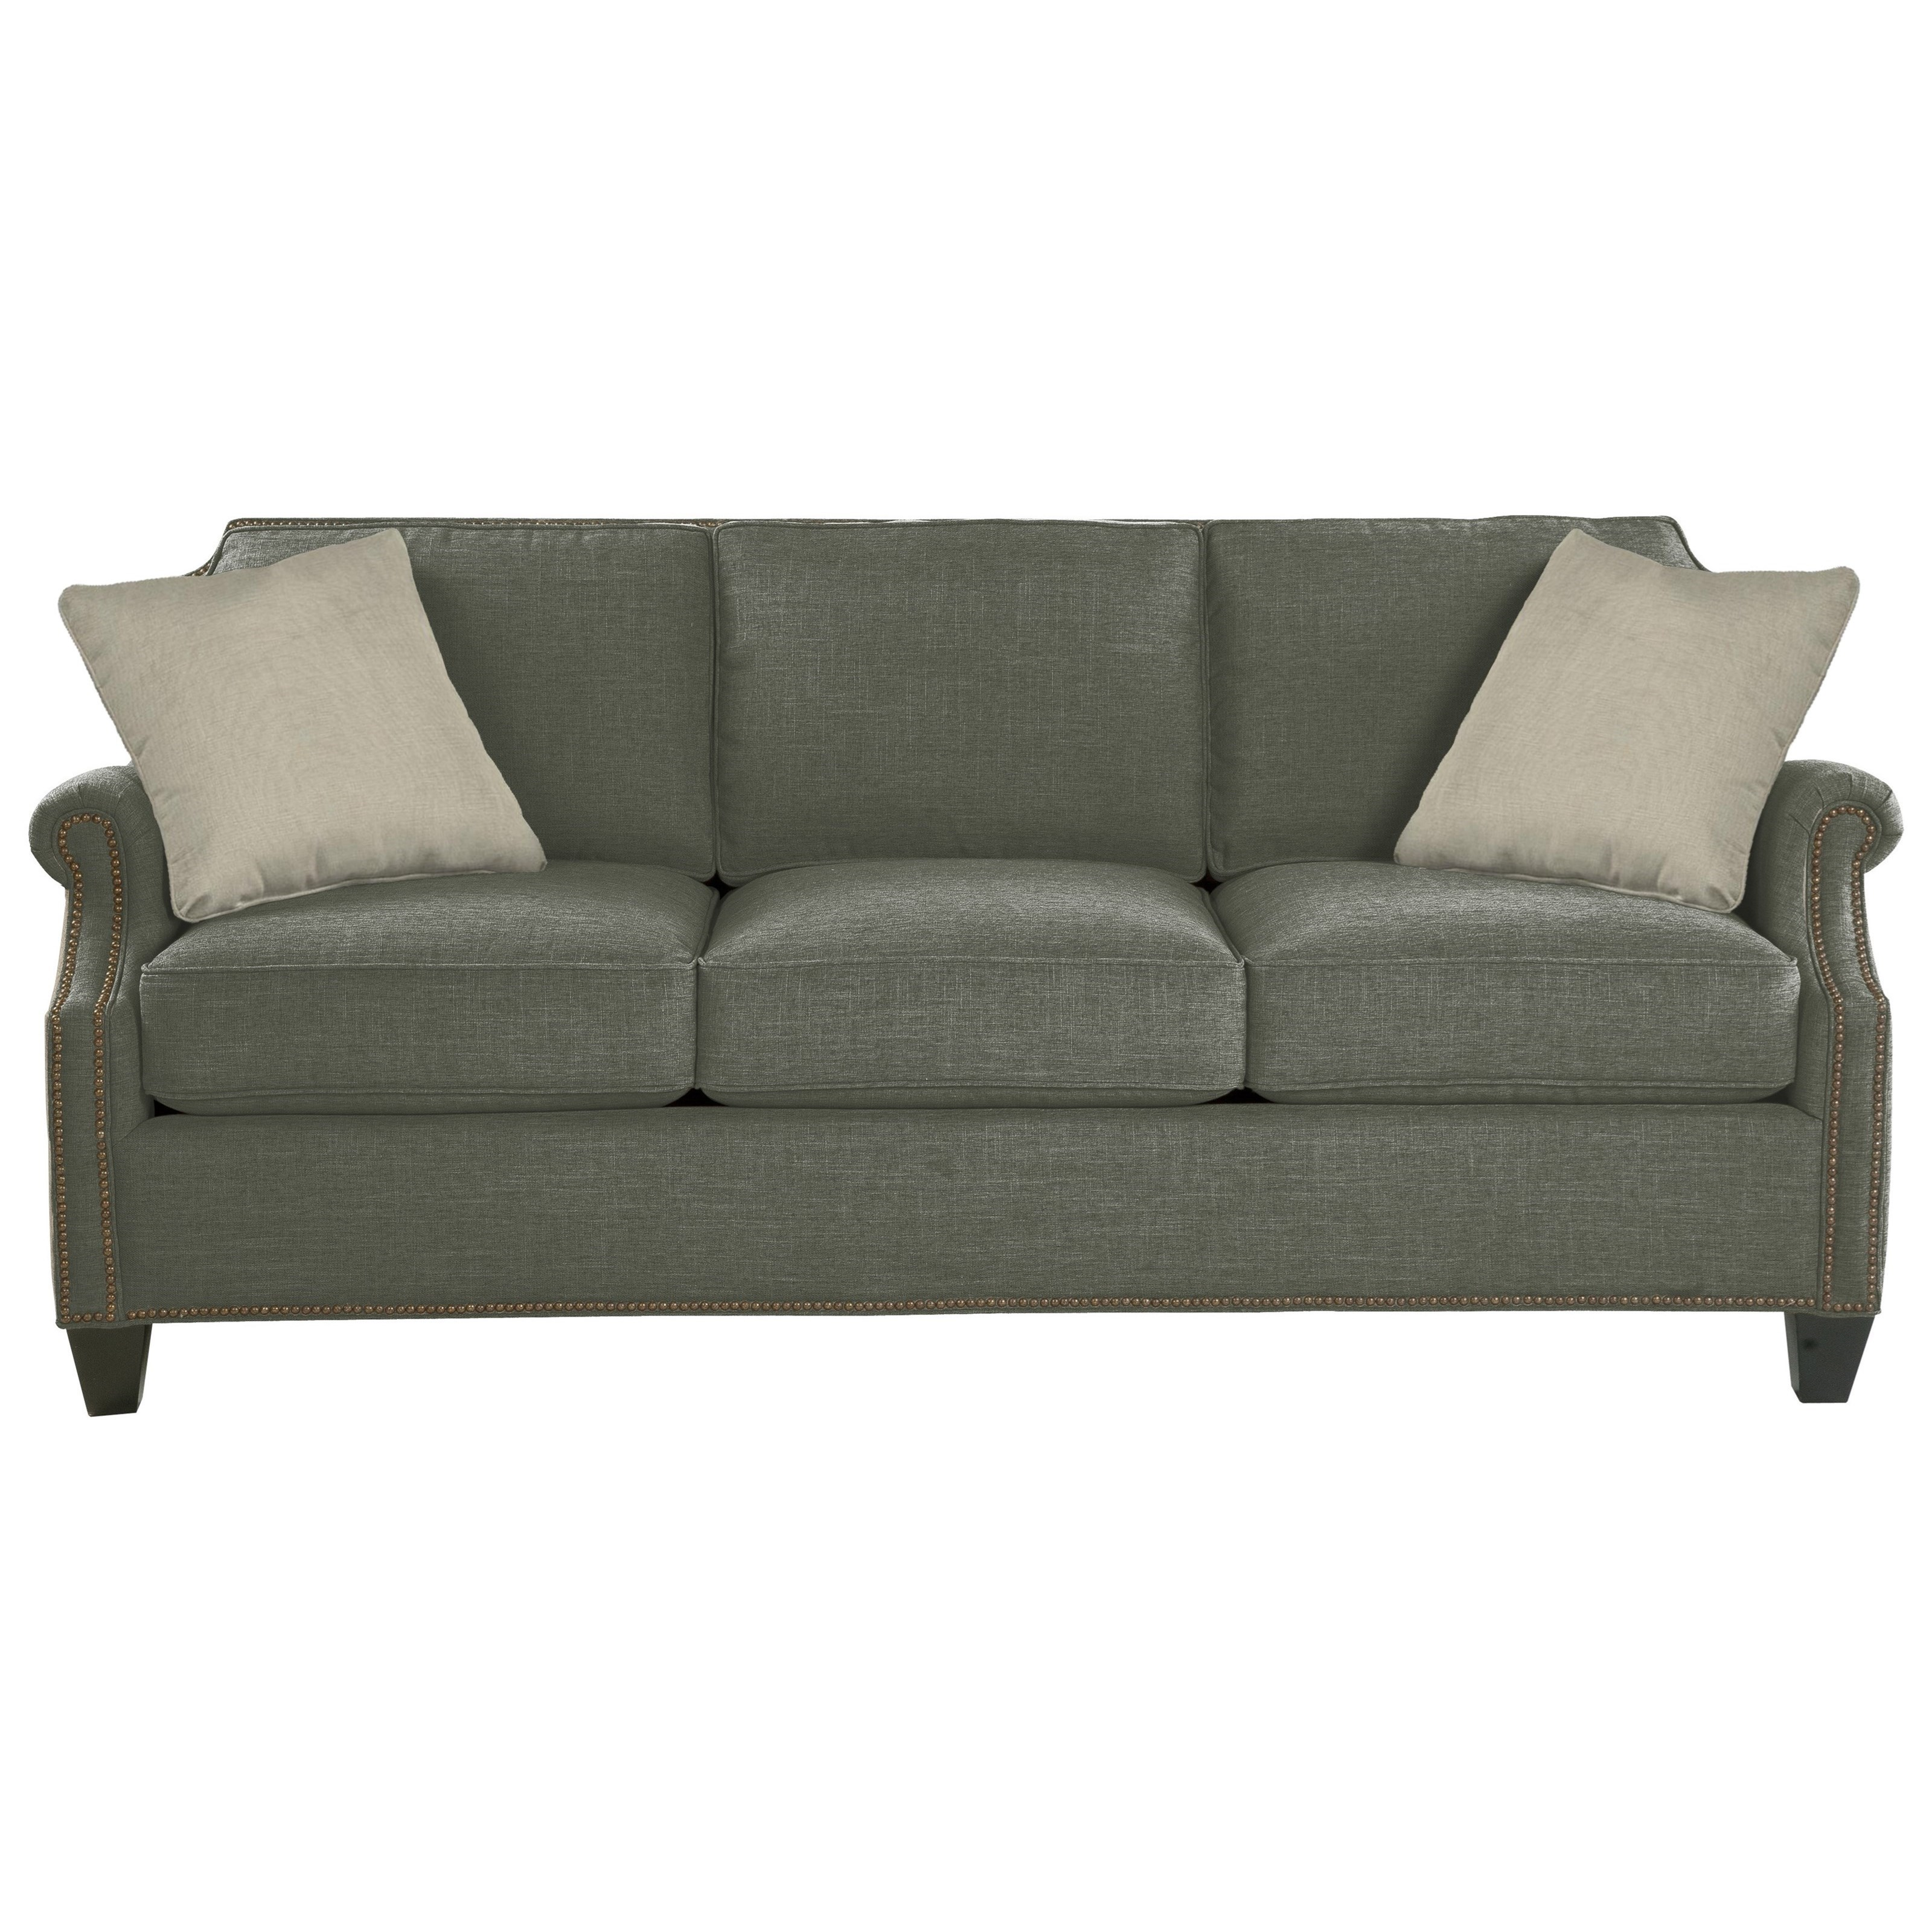 9383 Sofa by Craftmaster at Lindy's Furniture Company